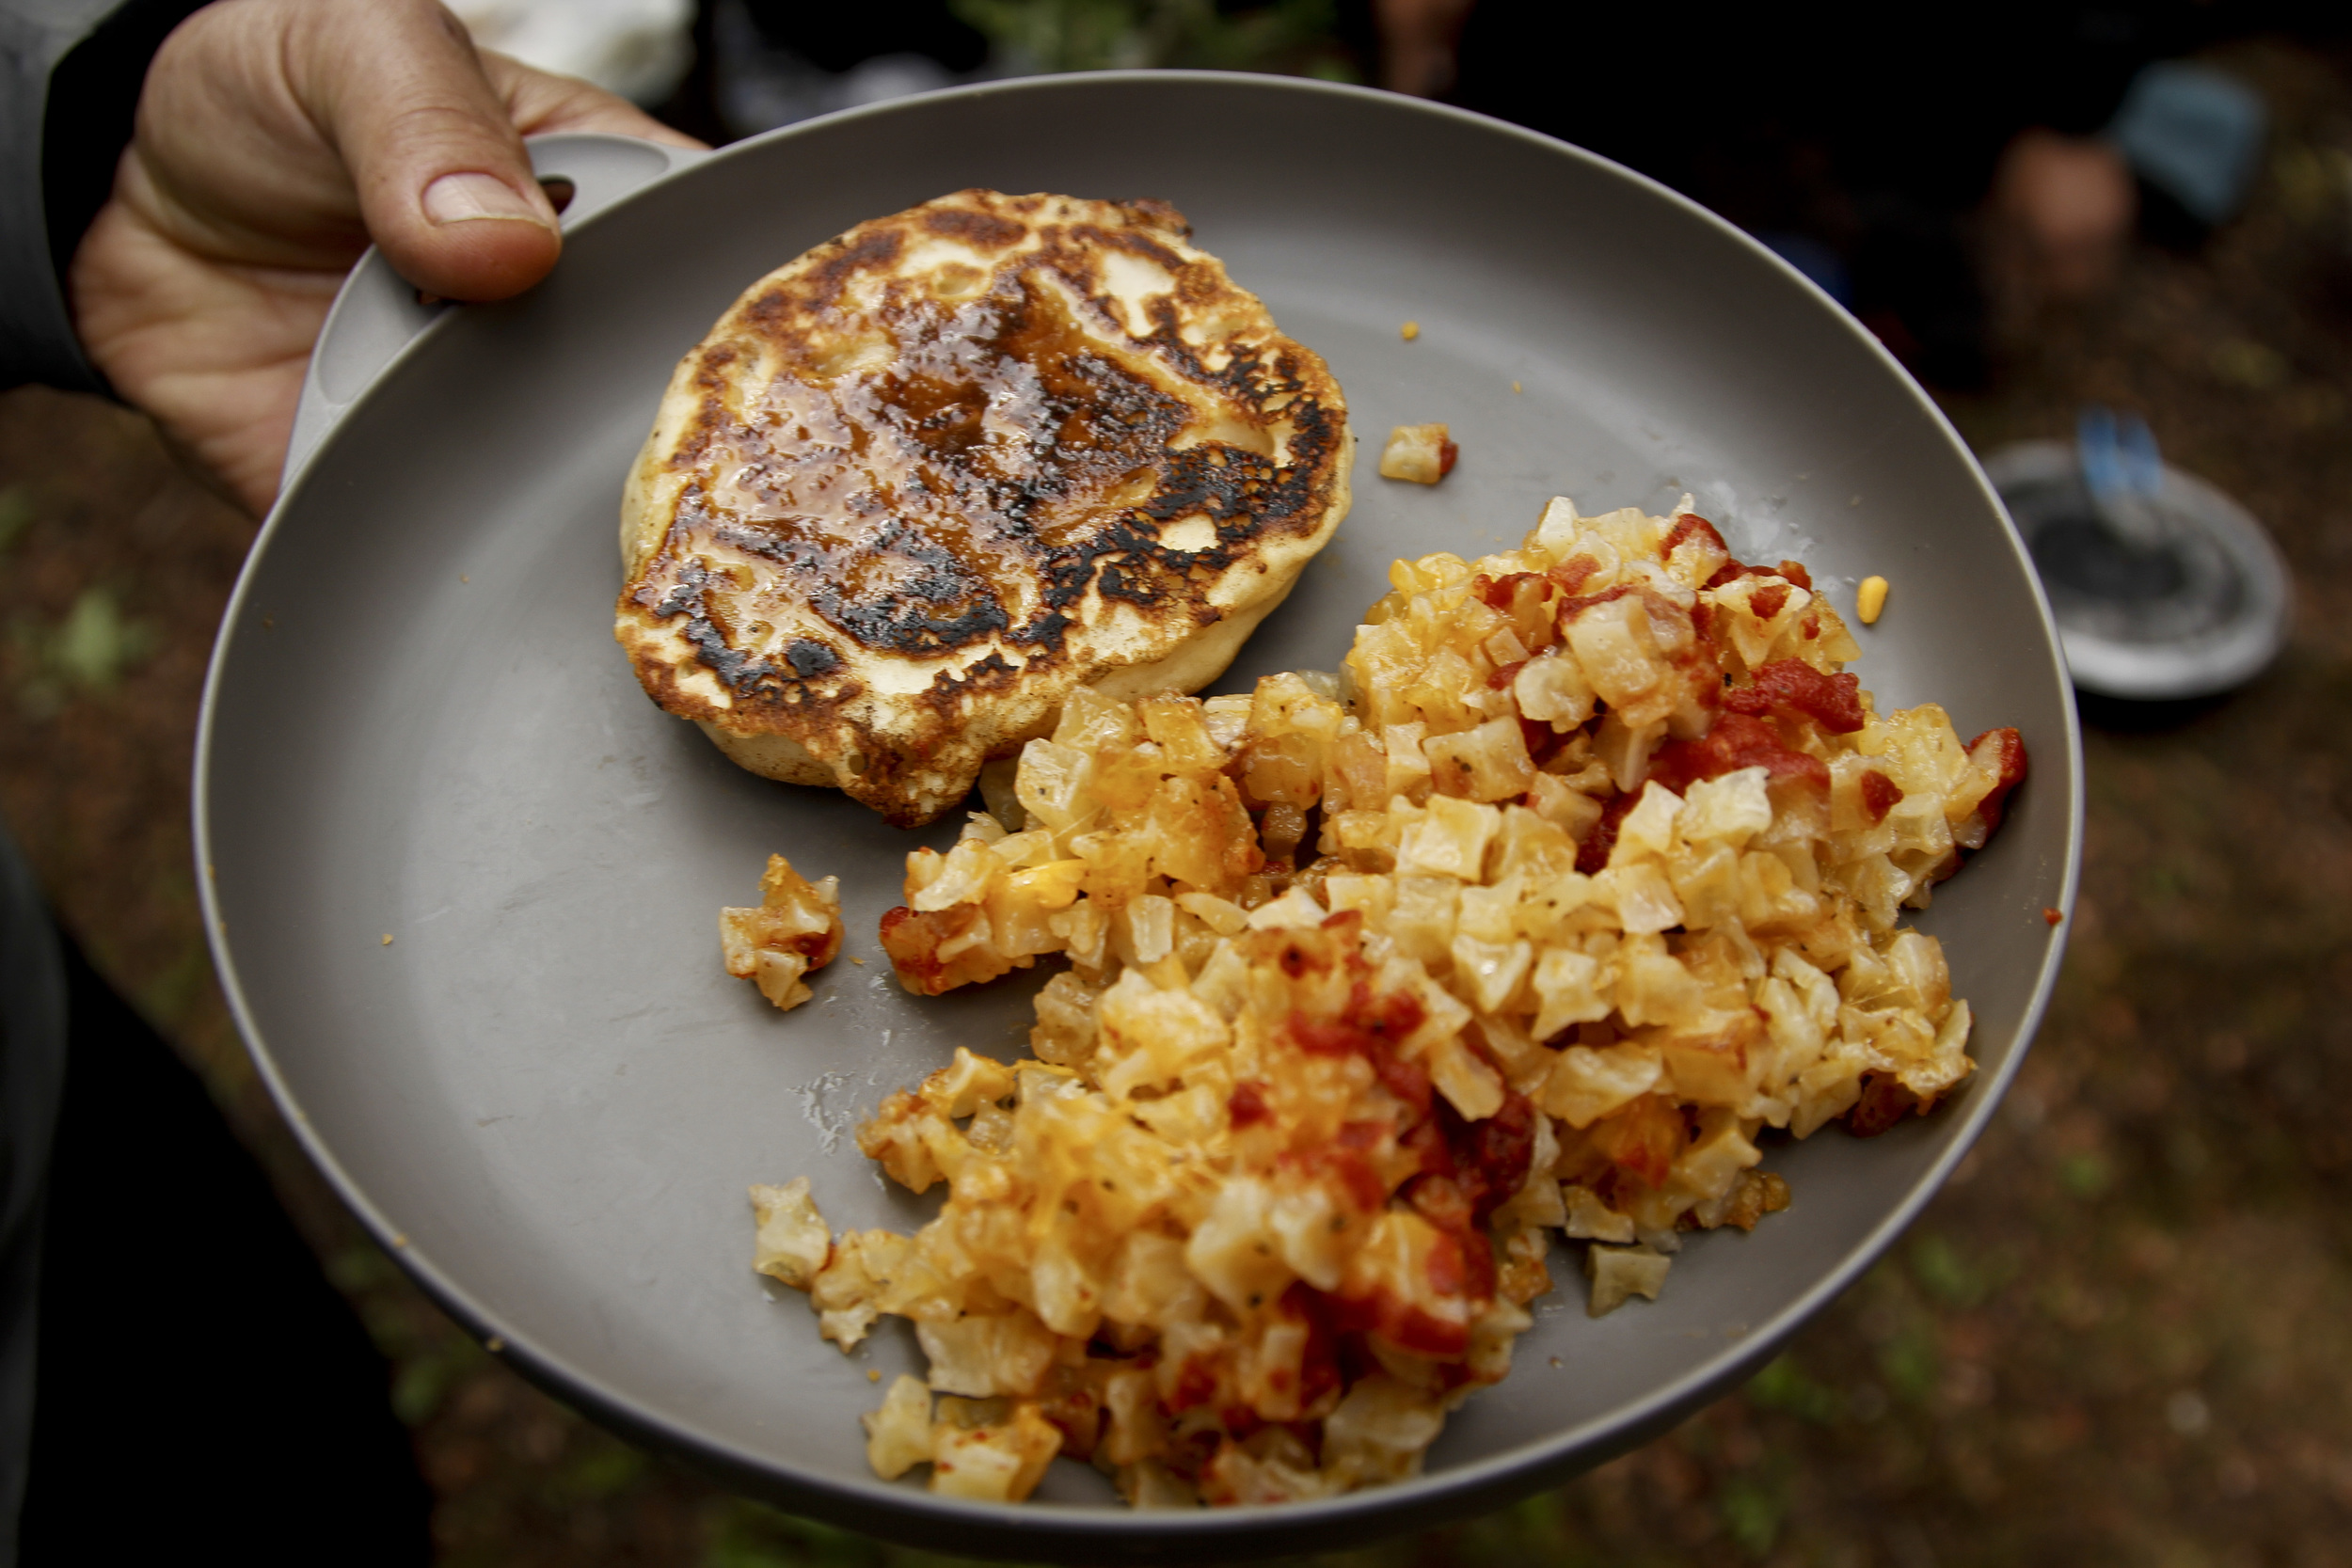 How about some hotcakes and hash browns with hand fashioned syrup and ketchup?